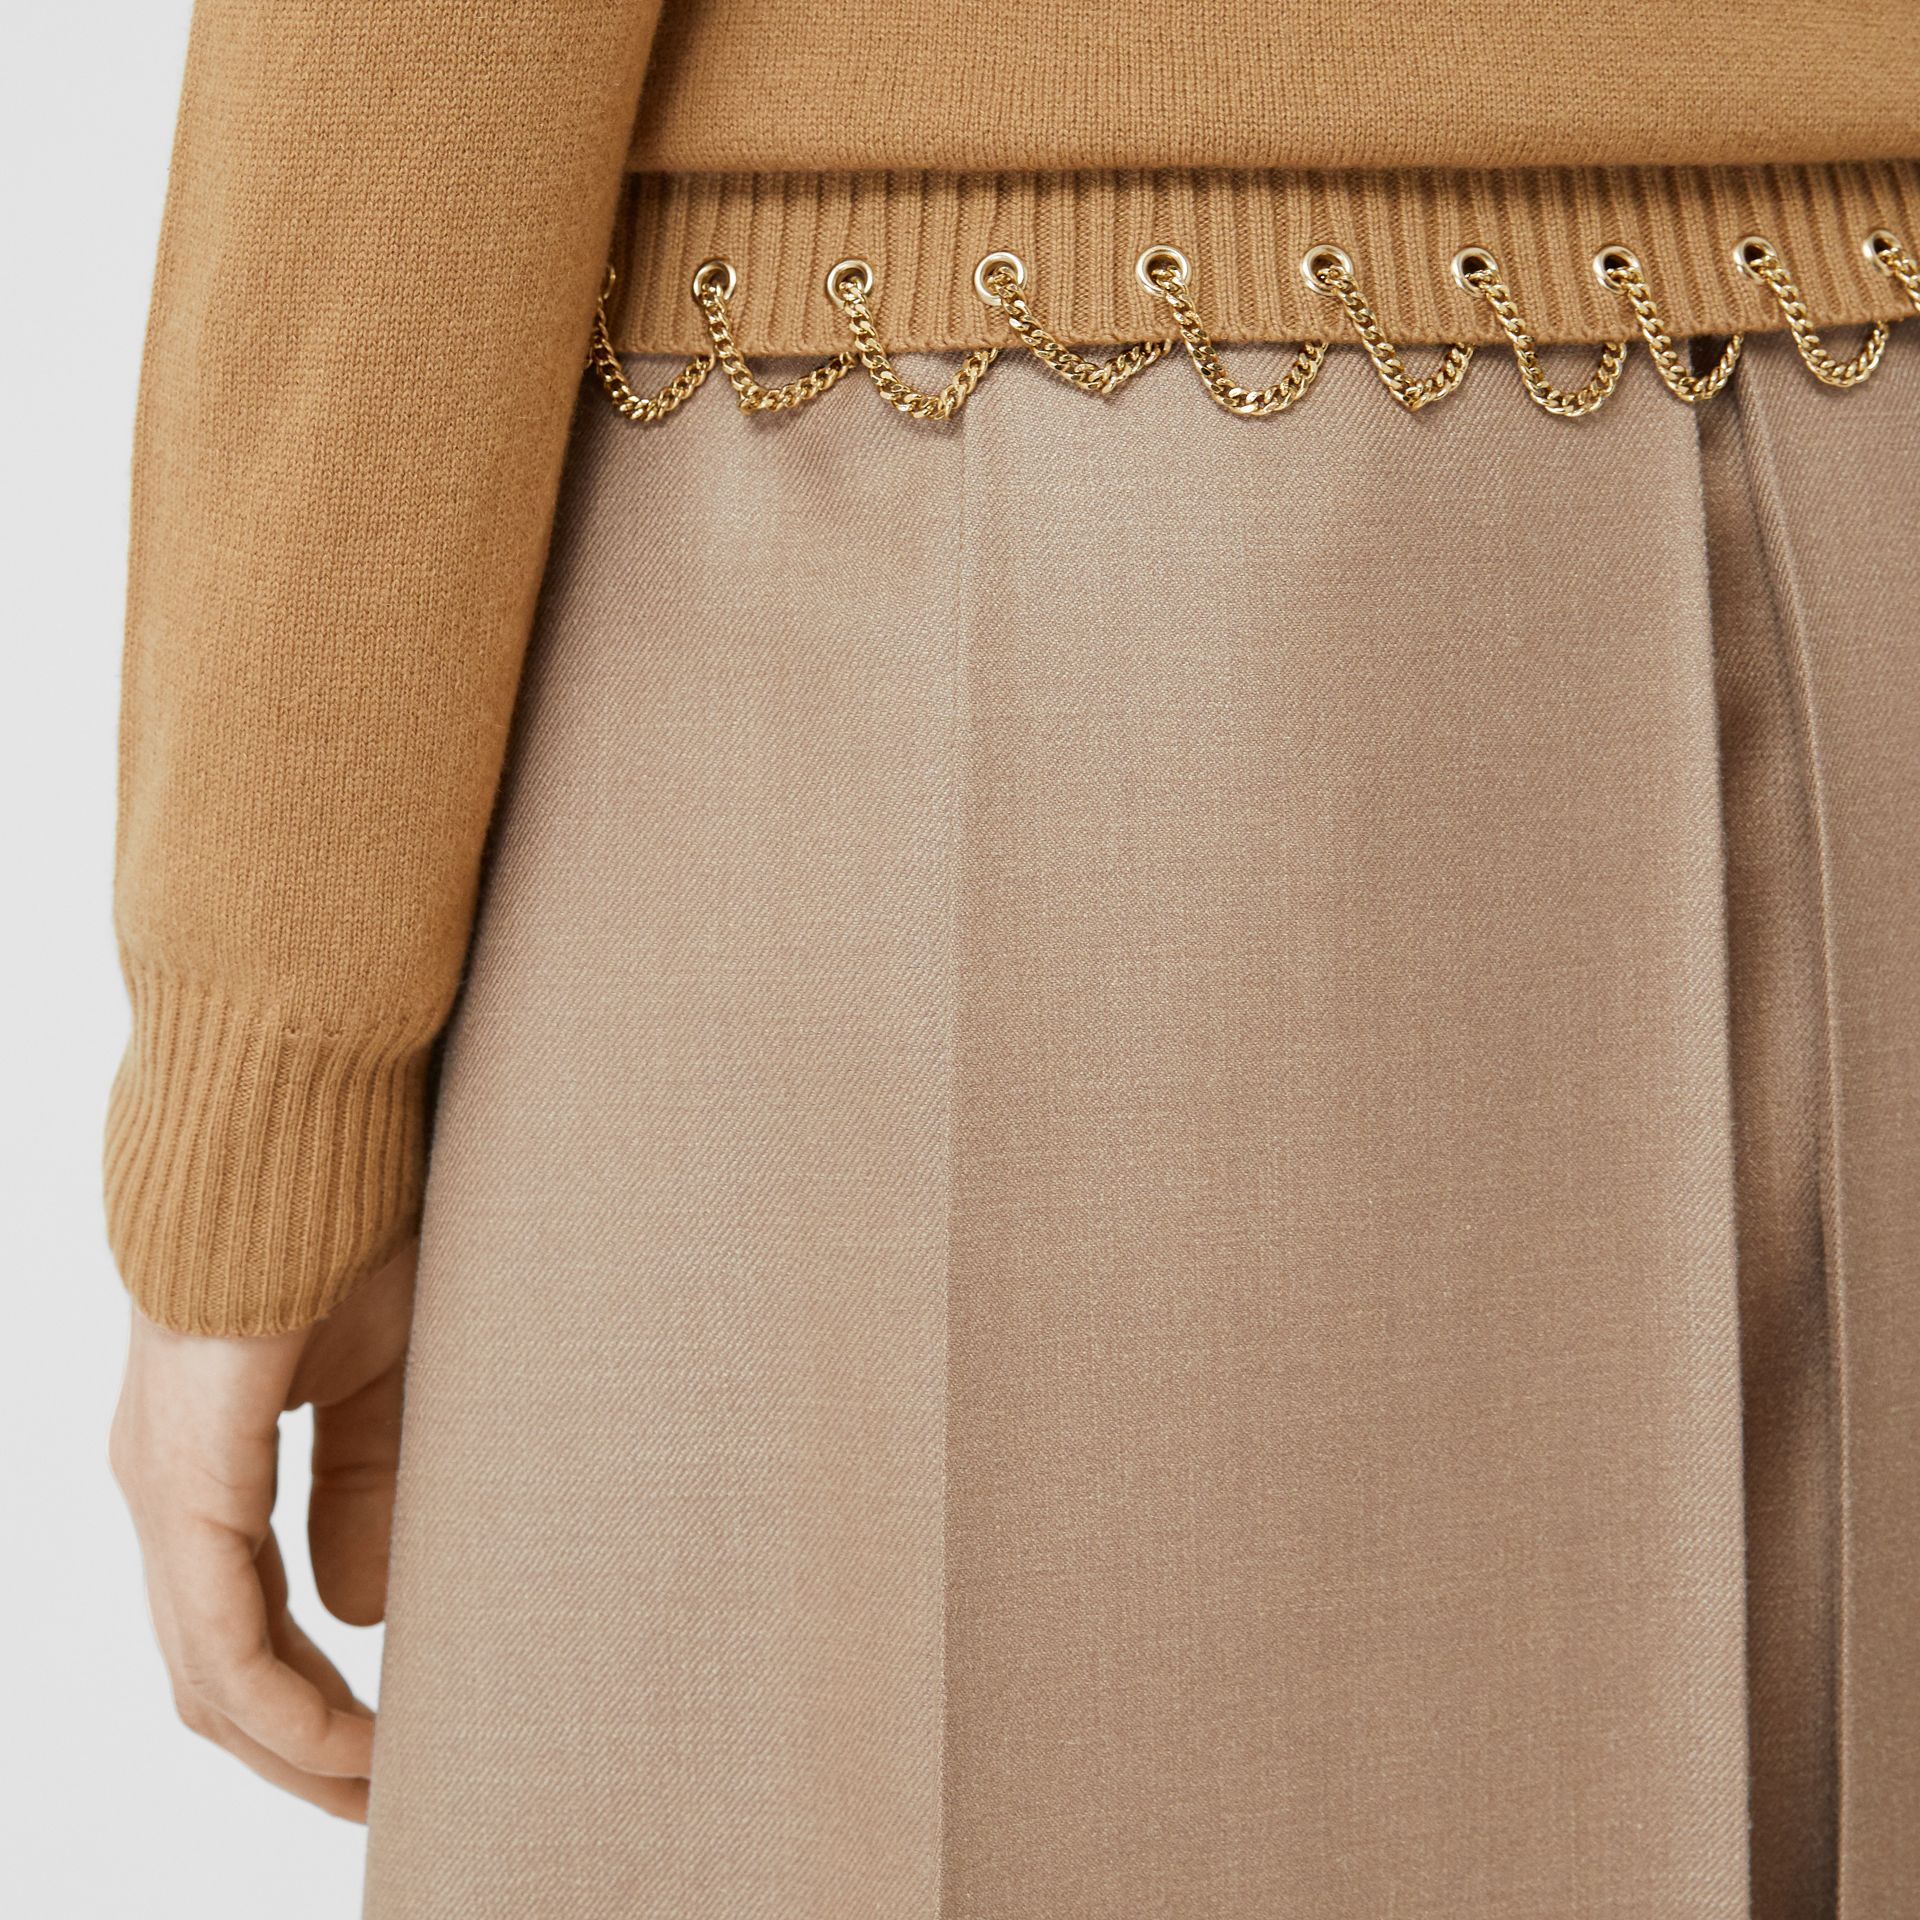 Chain Detail Cashmere Sweater in Camel - Women | Burberry United Kingdom - gallery image 4